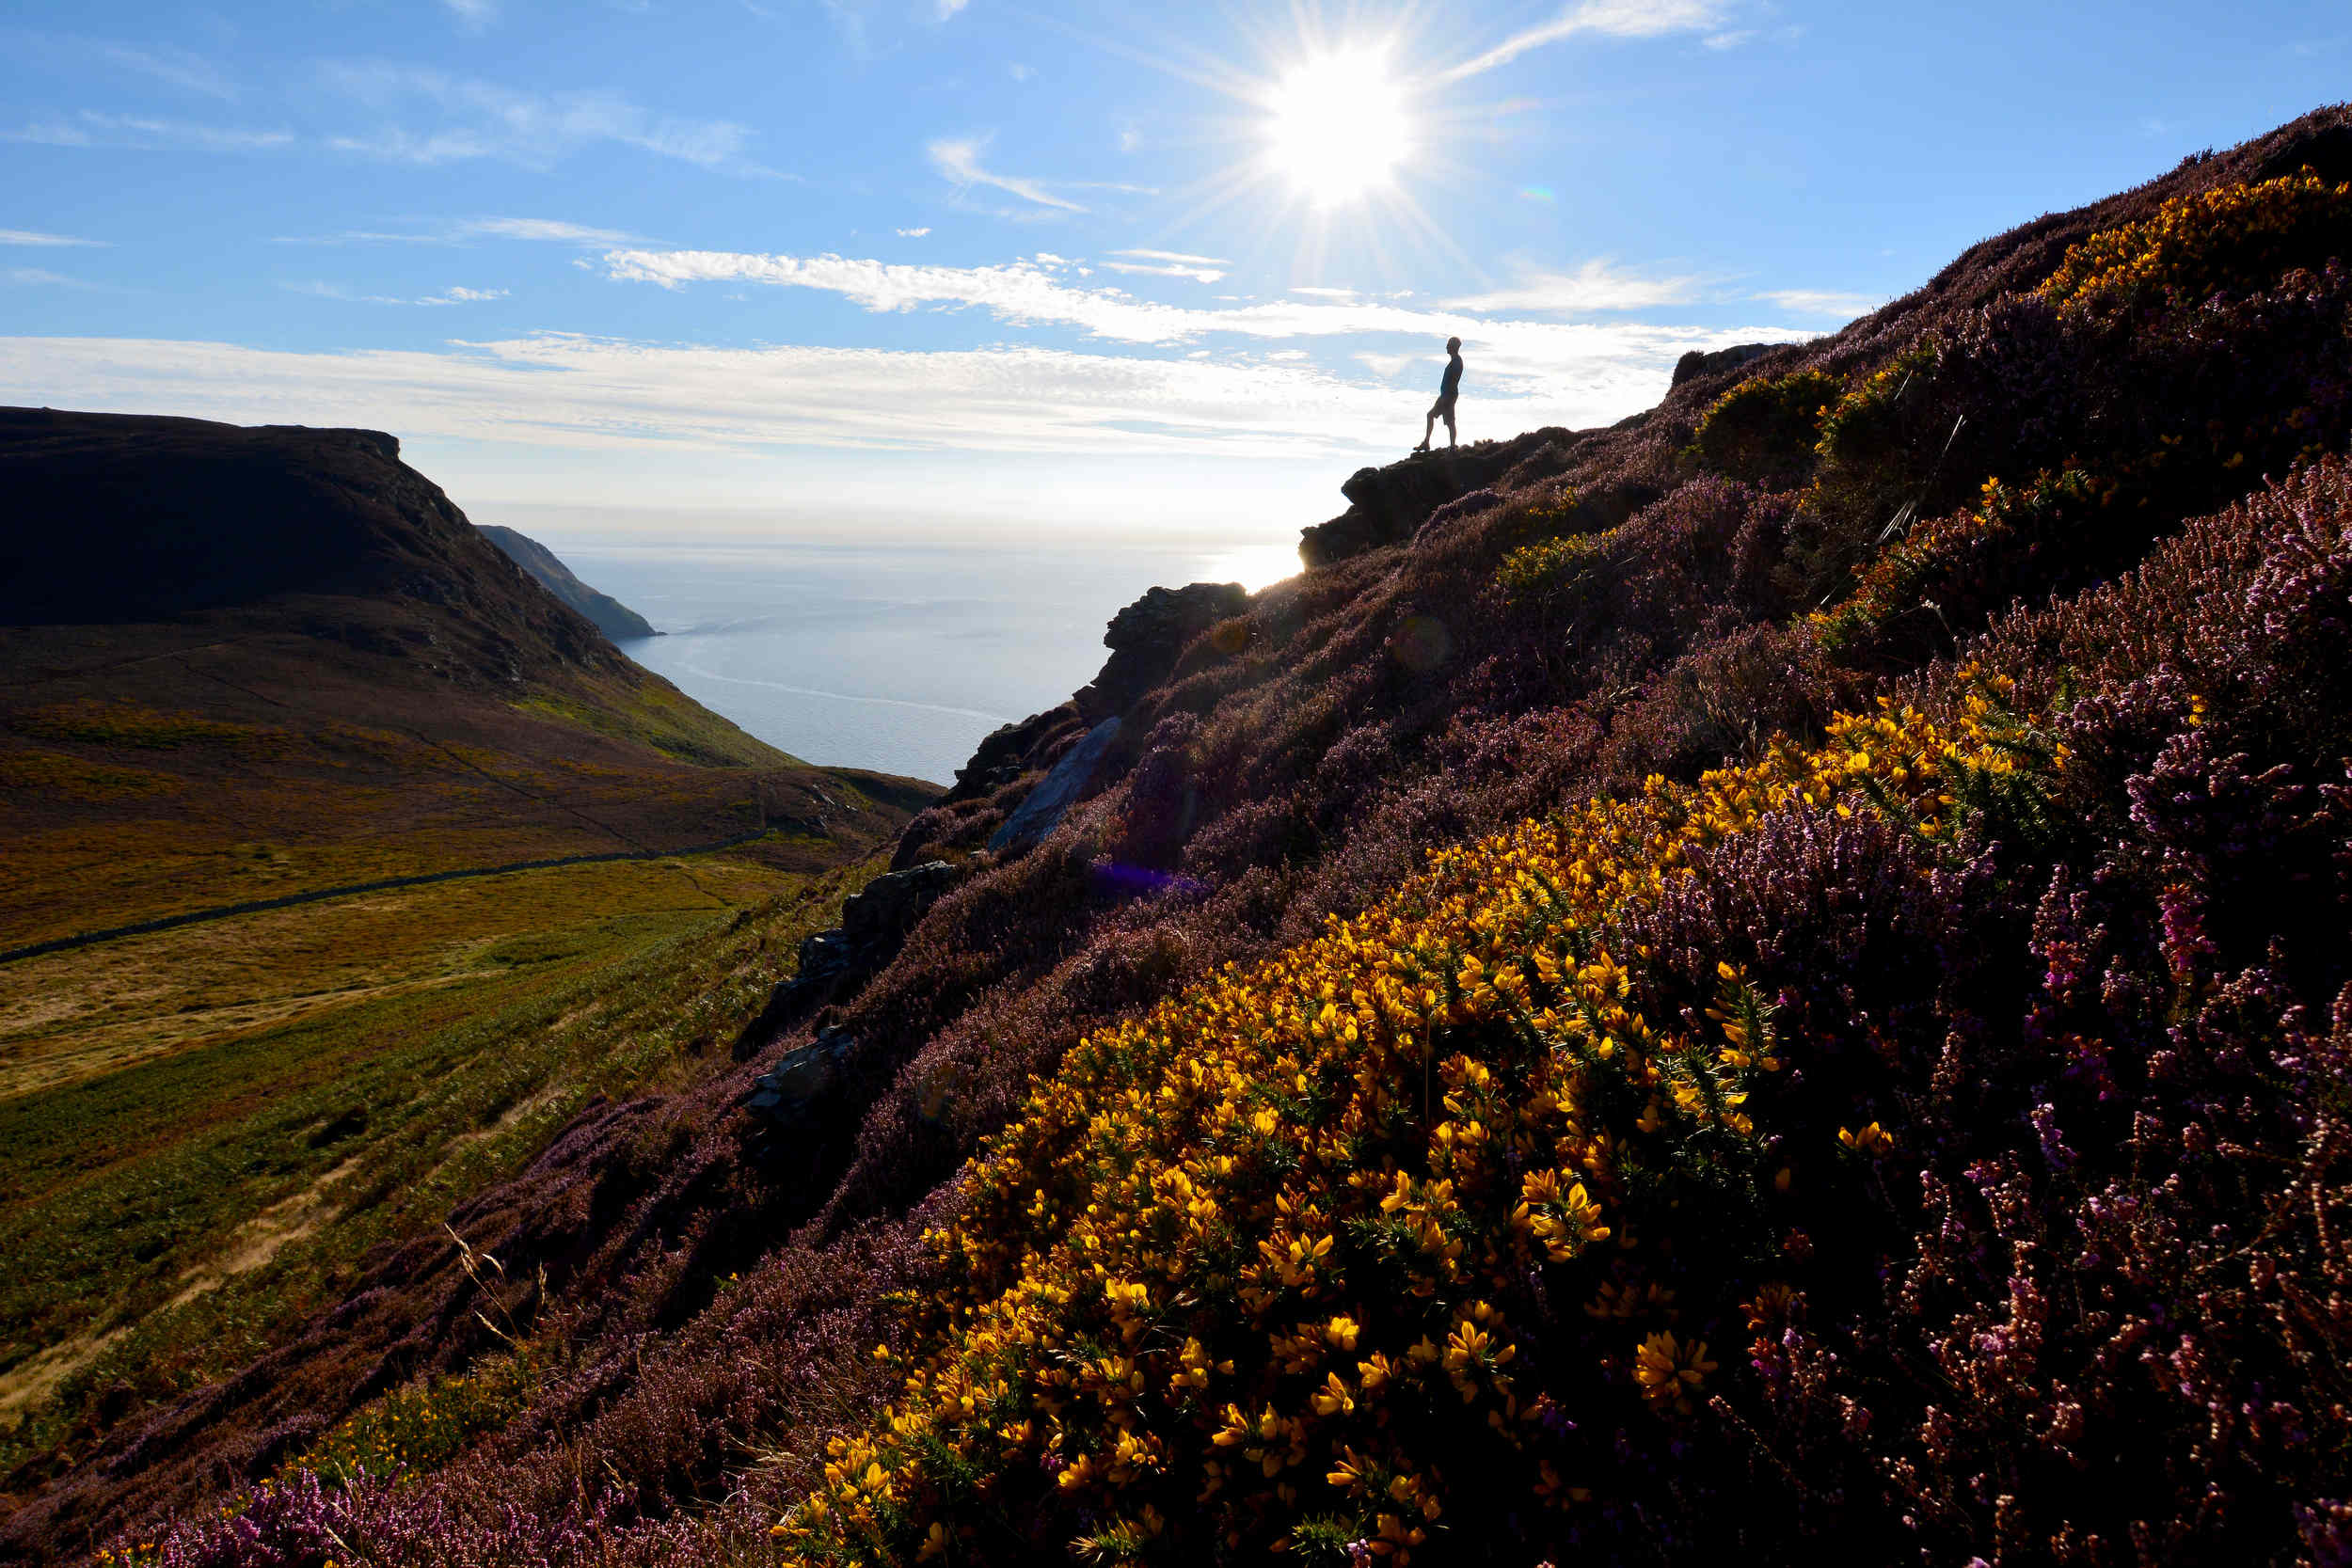 A lone walker in the Sloc valley